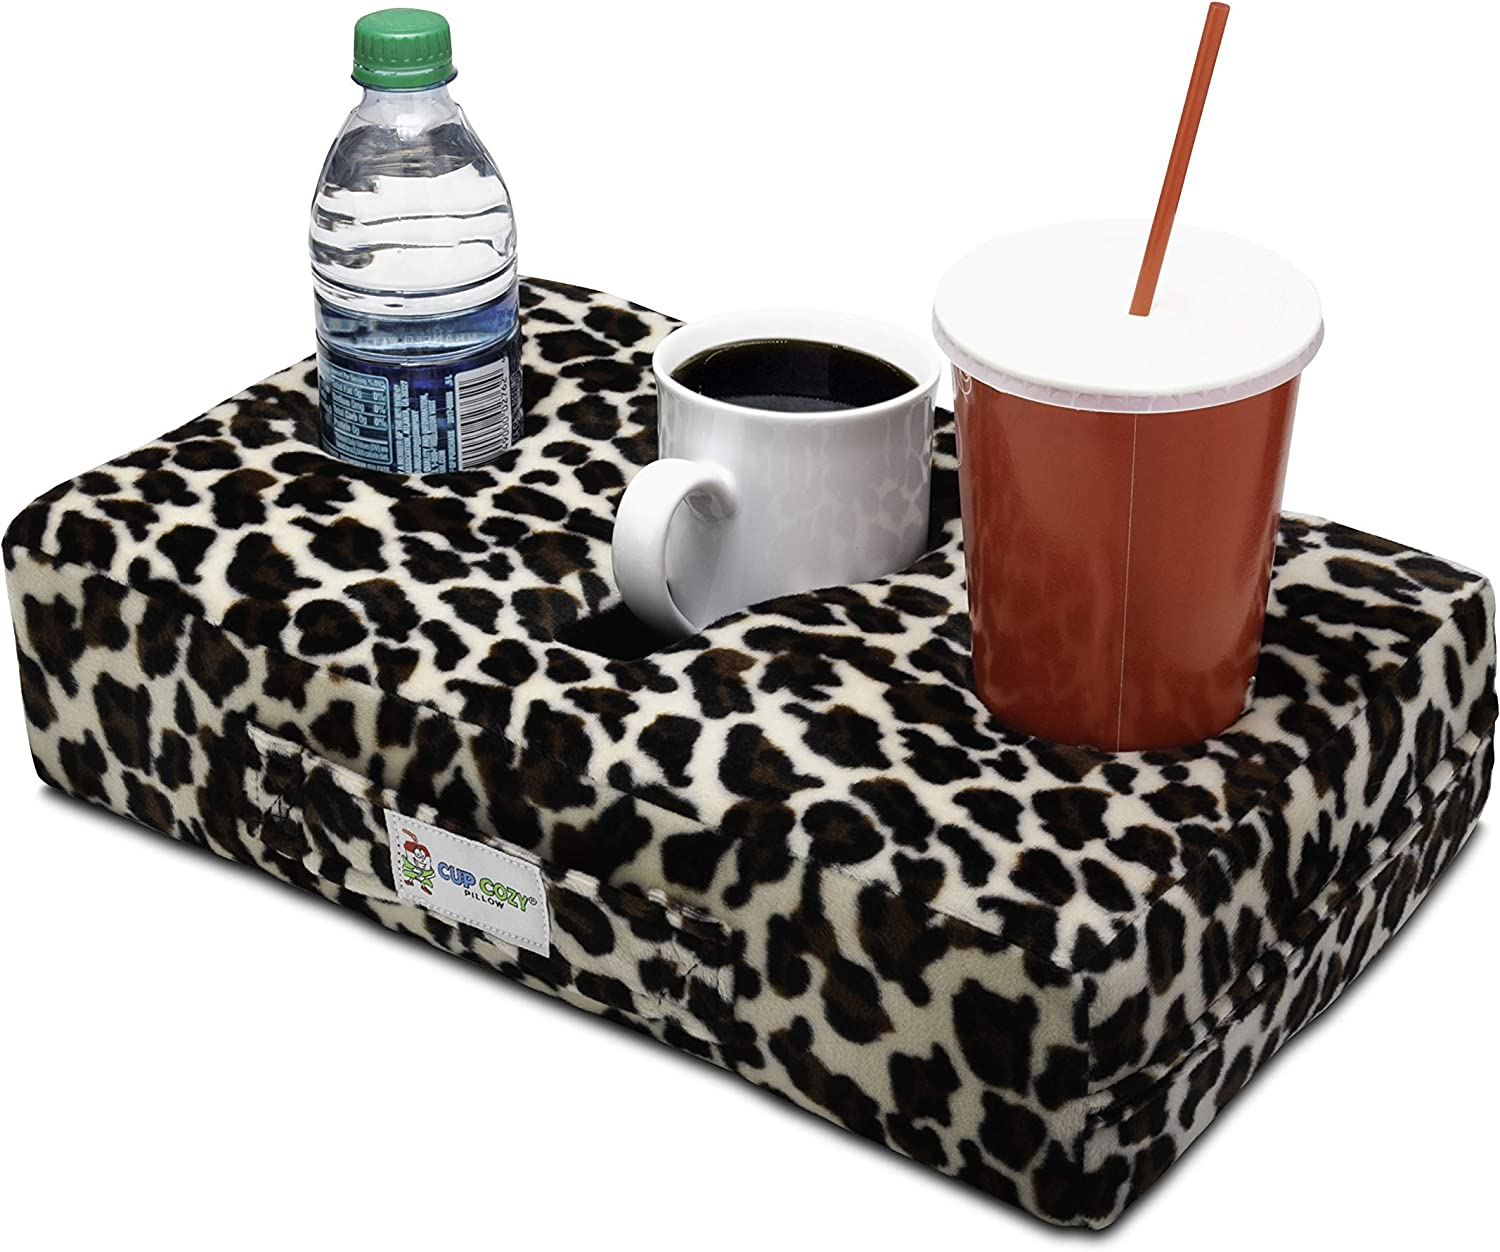 Cup Cozy Pillow (Cheetah As Seen on TV -The World's Best Cup Holder! Keep Your Drinks Close and Prevent Spills. Use it Anywhere-Couch, Floor, Bed, Man cave, car, RV, Park, Beach and More!